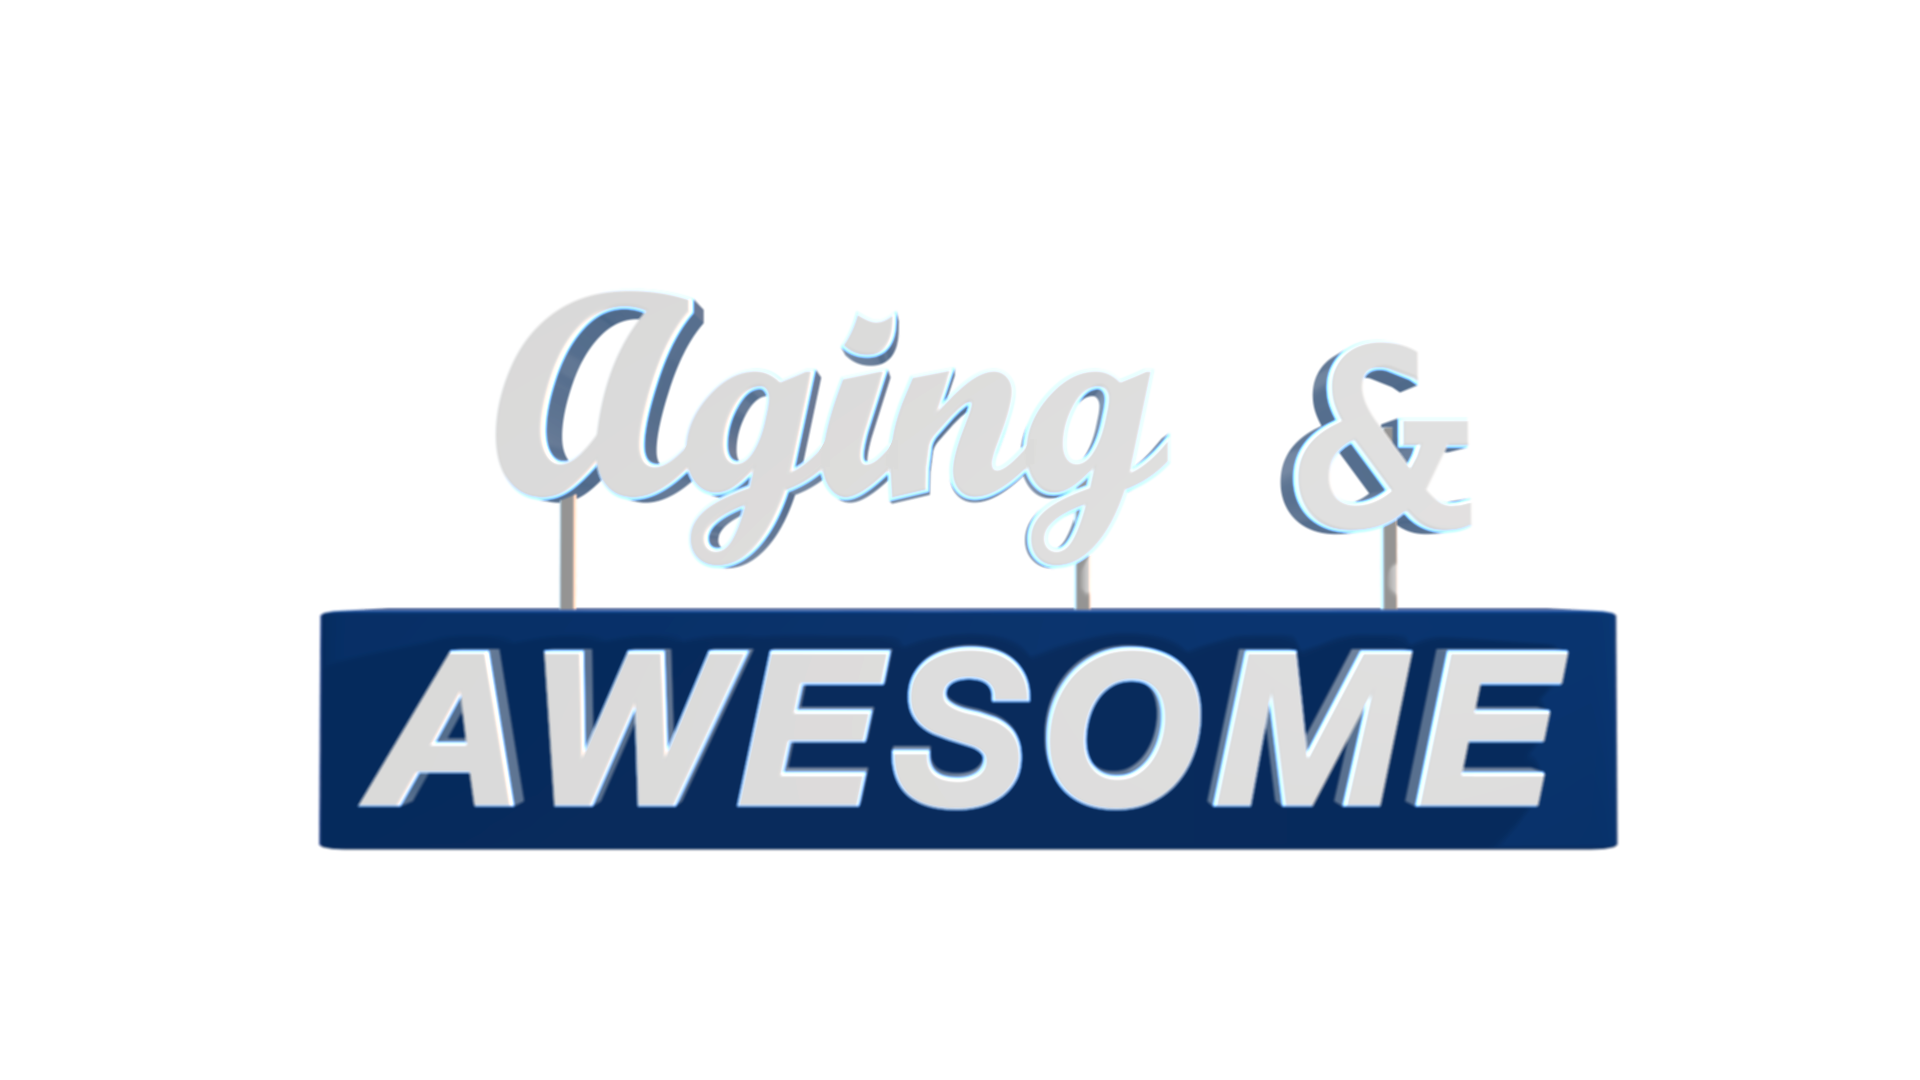 B. Aging & Awesome (Media Partner)